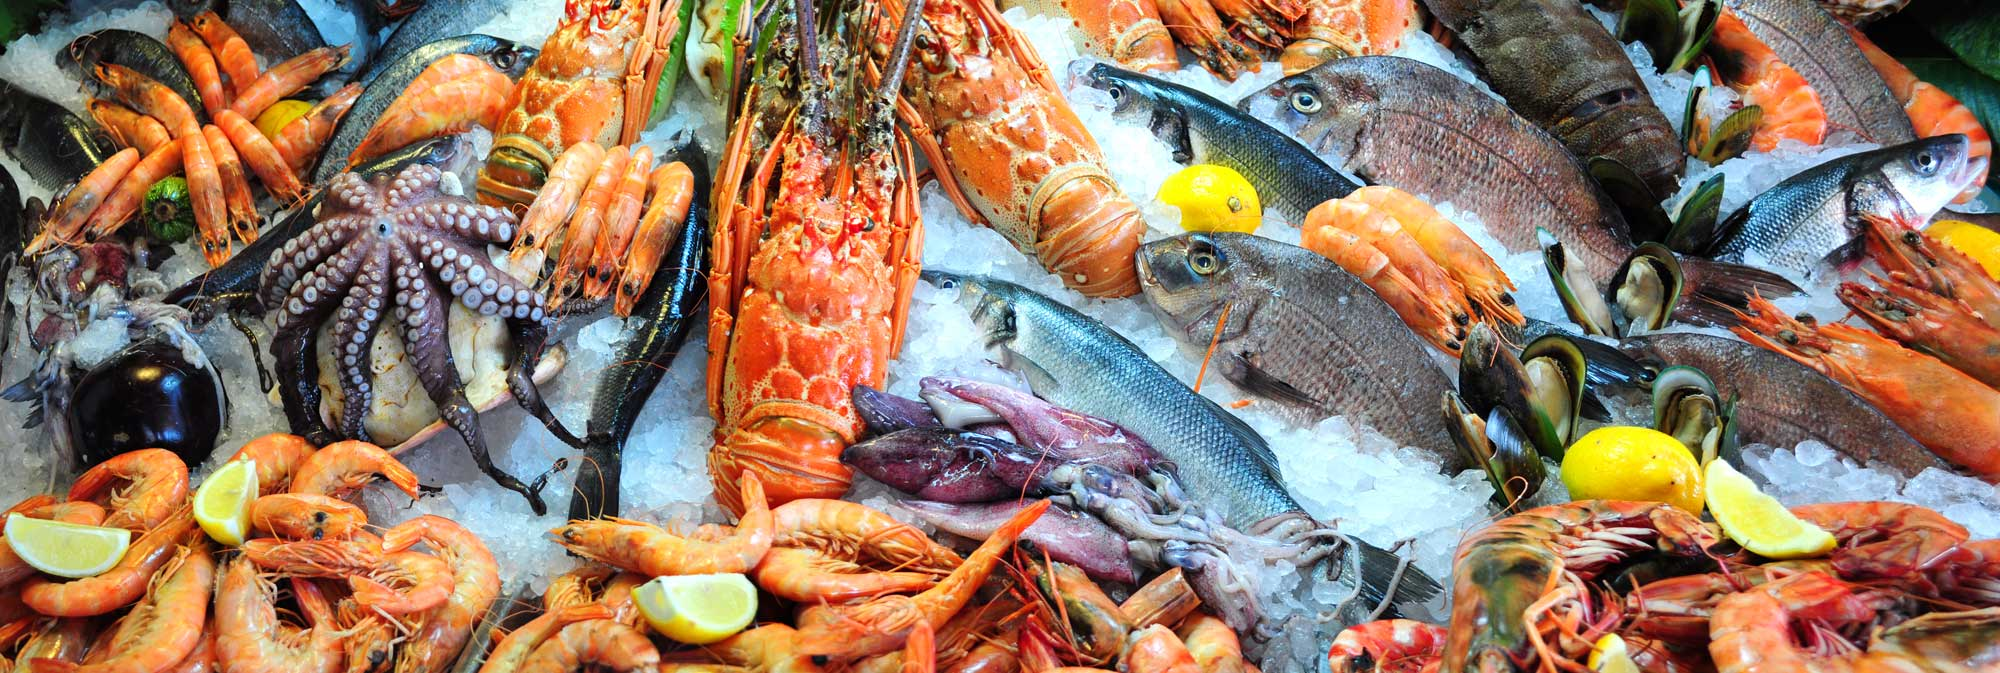 Frozen Foods Seafood Customs Clearance